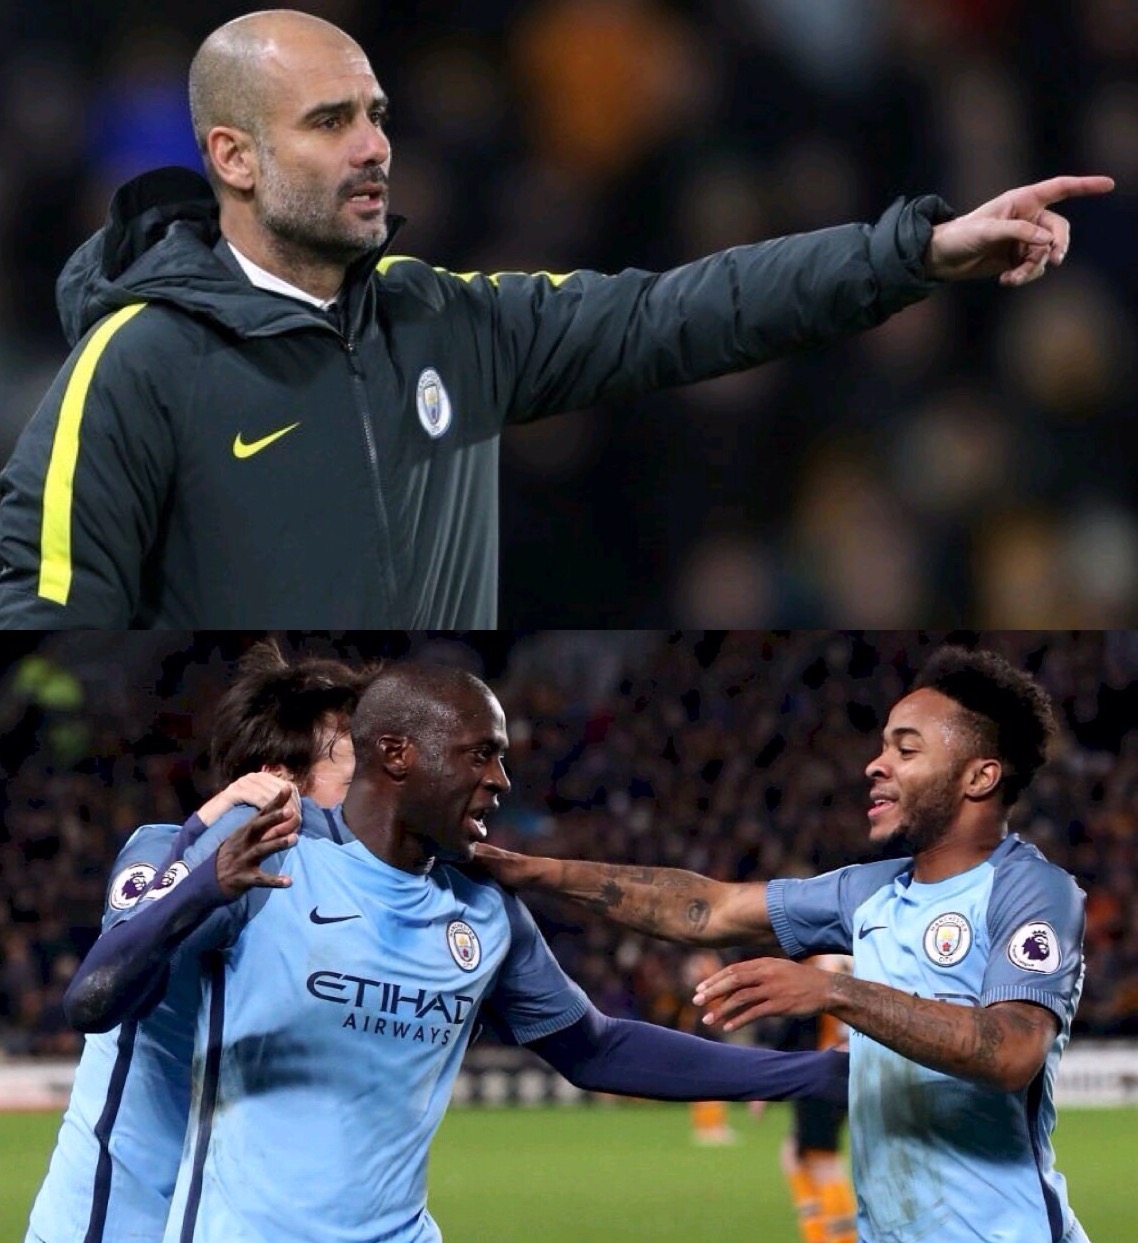 Guardiola: Man City's Target Now Is Top Four, Not EPL Title